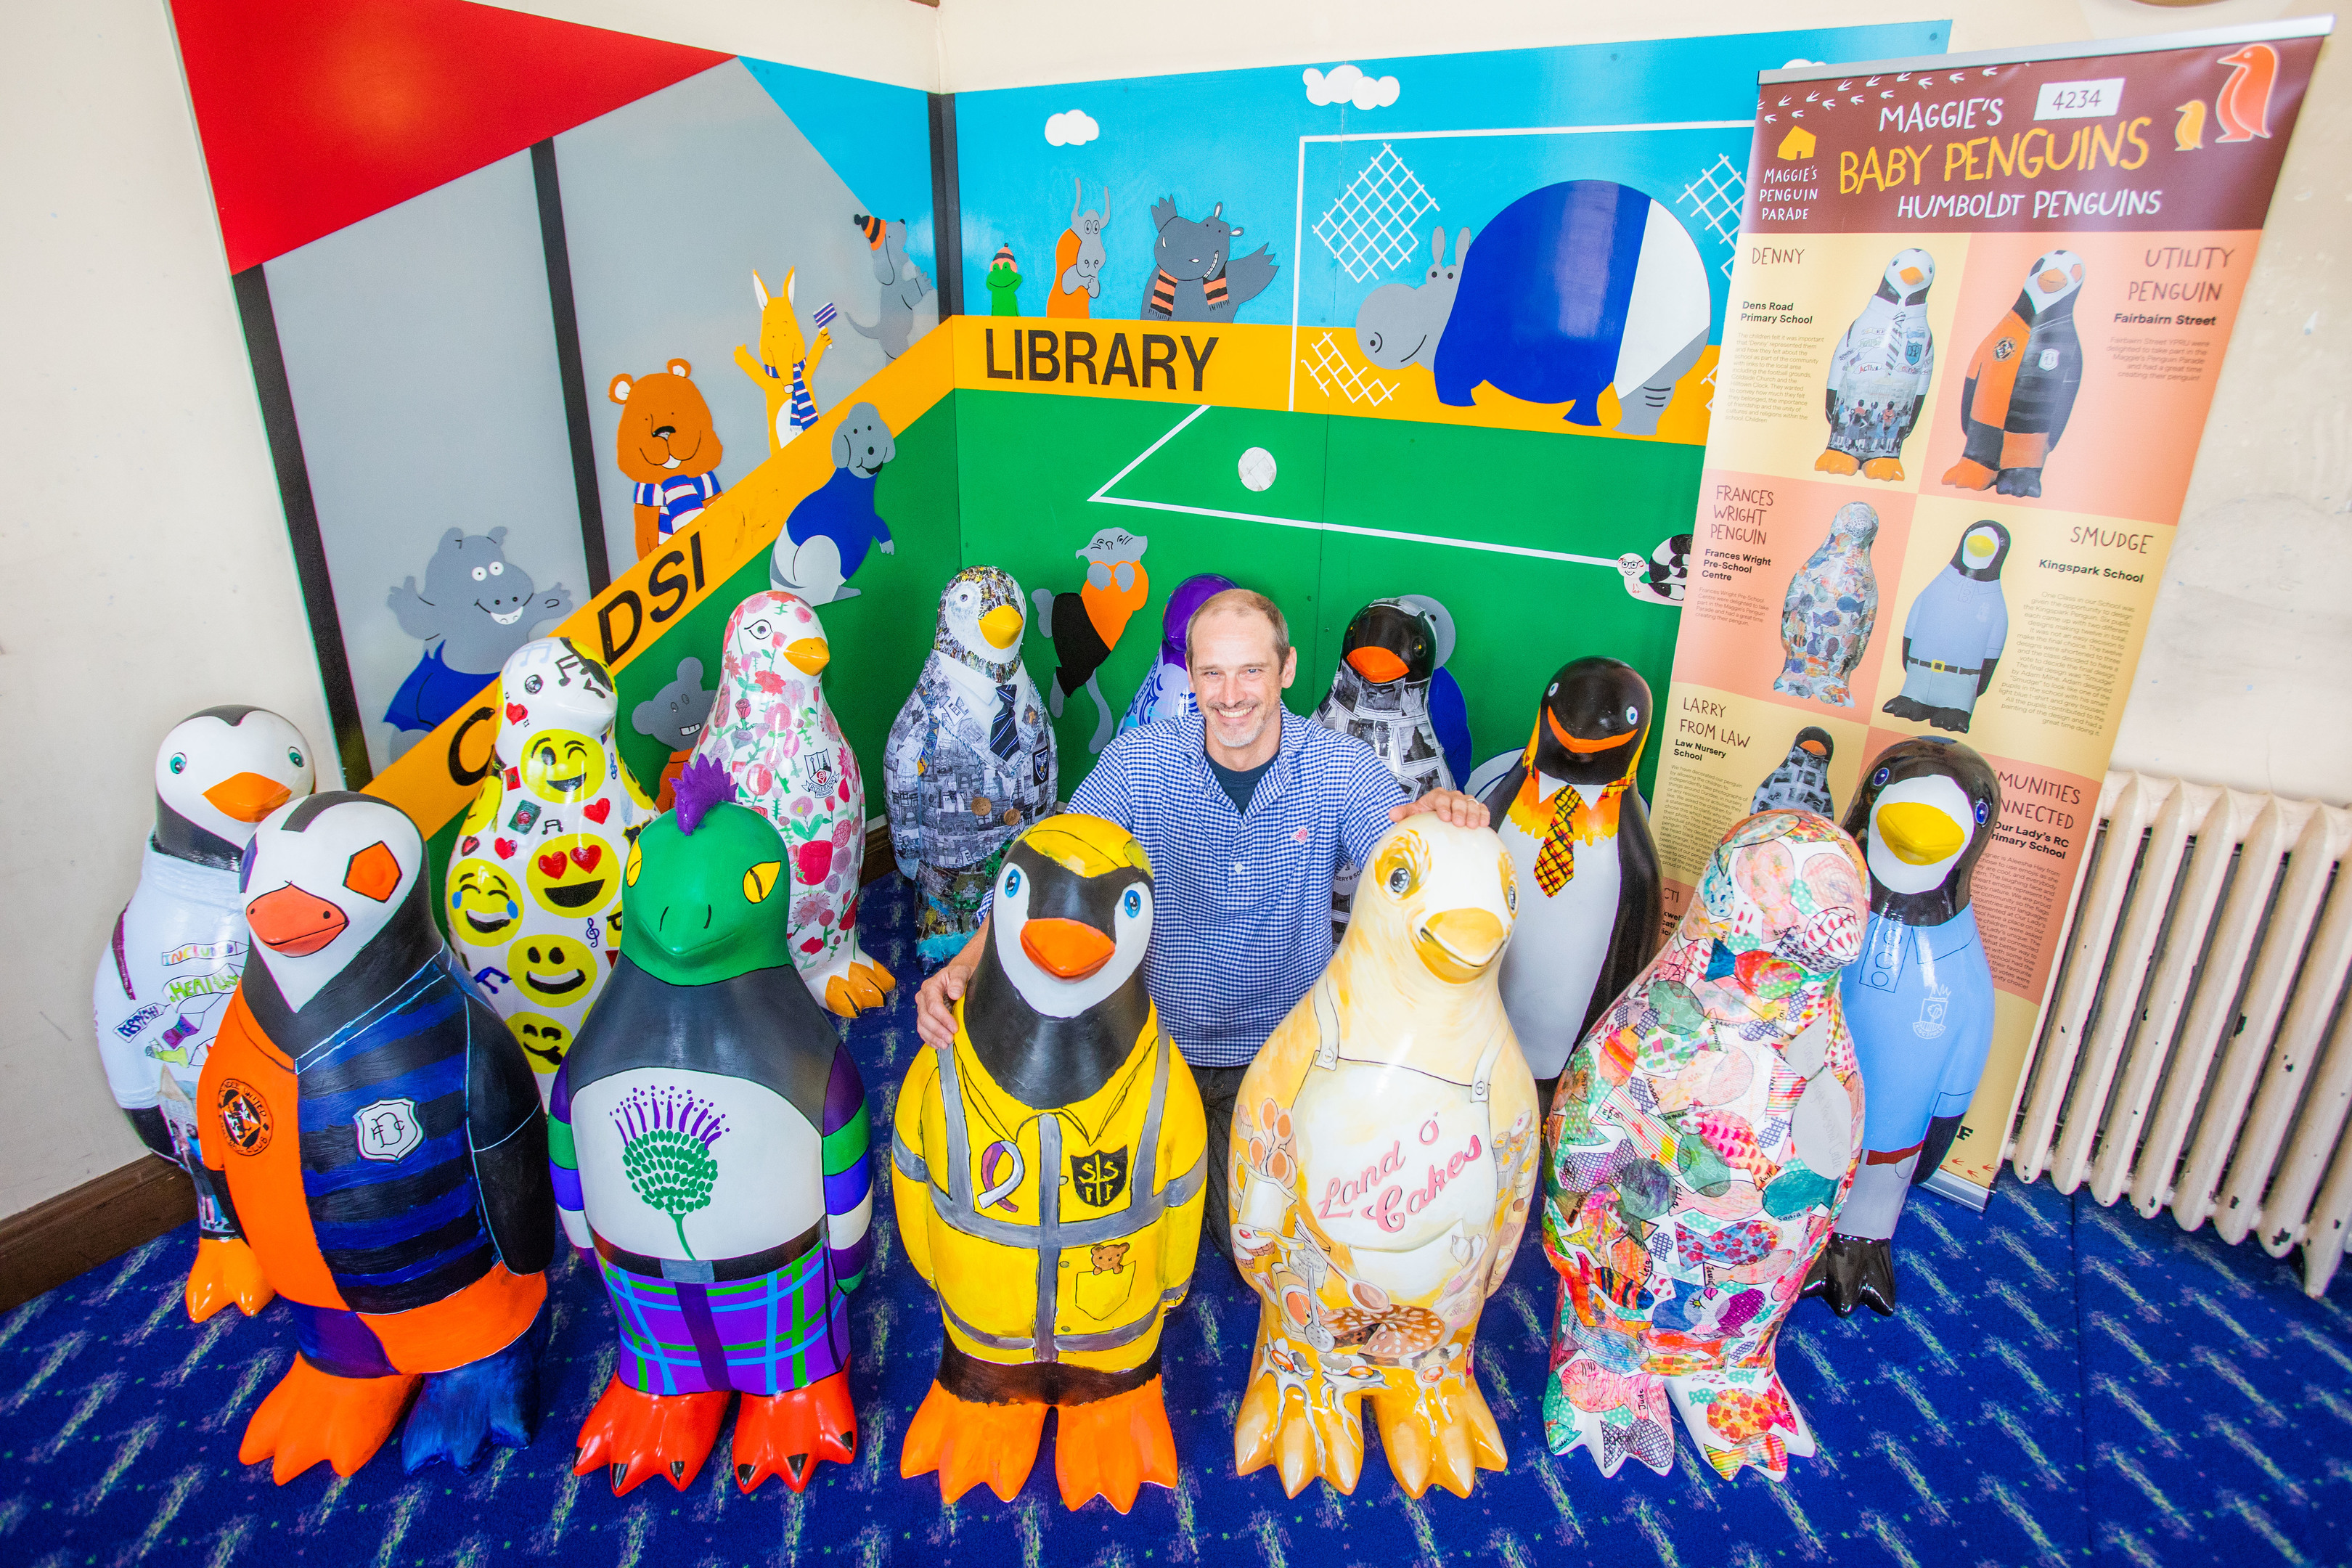 The penguin chicks visited Coldside Library along with project manager Neil Cooney.